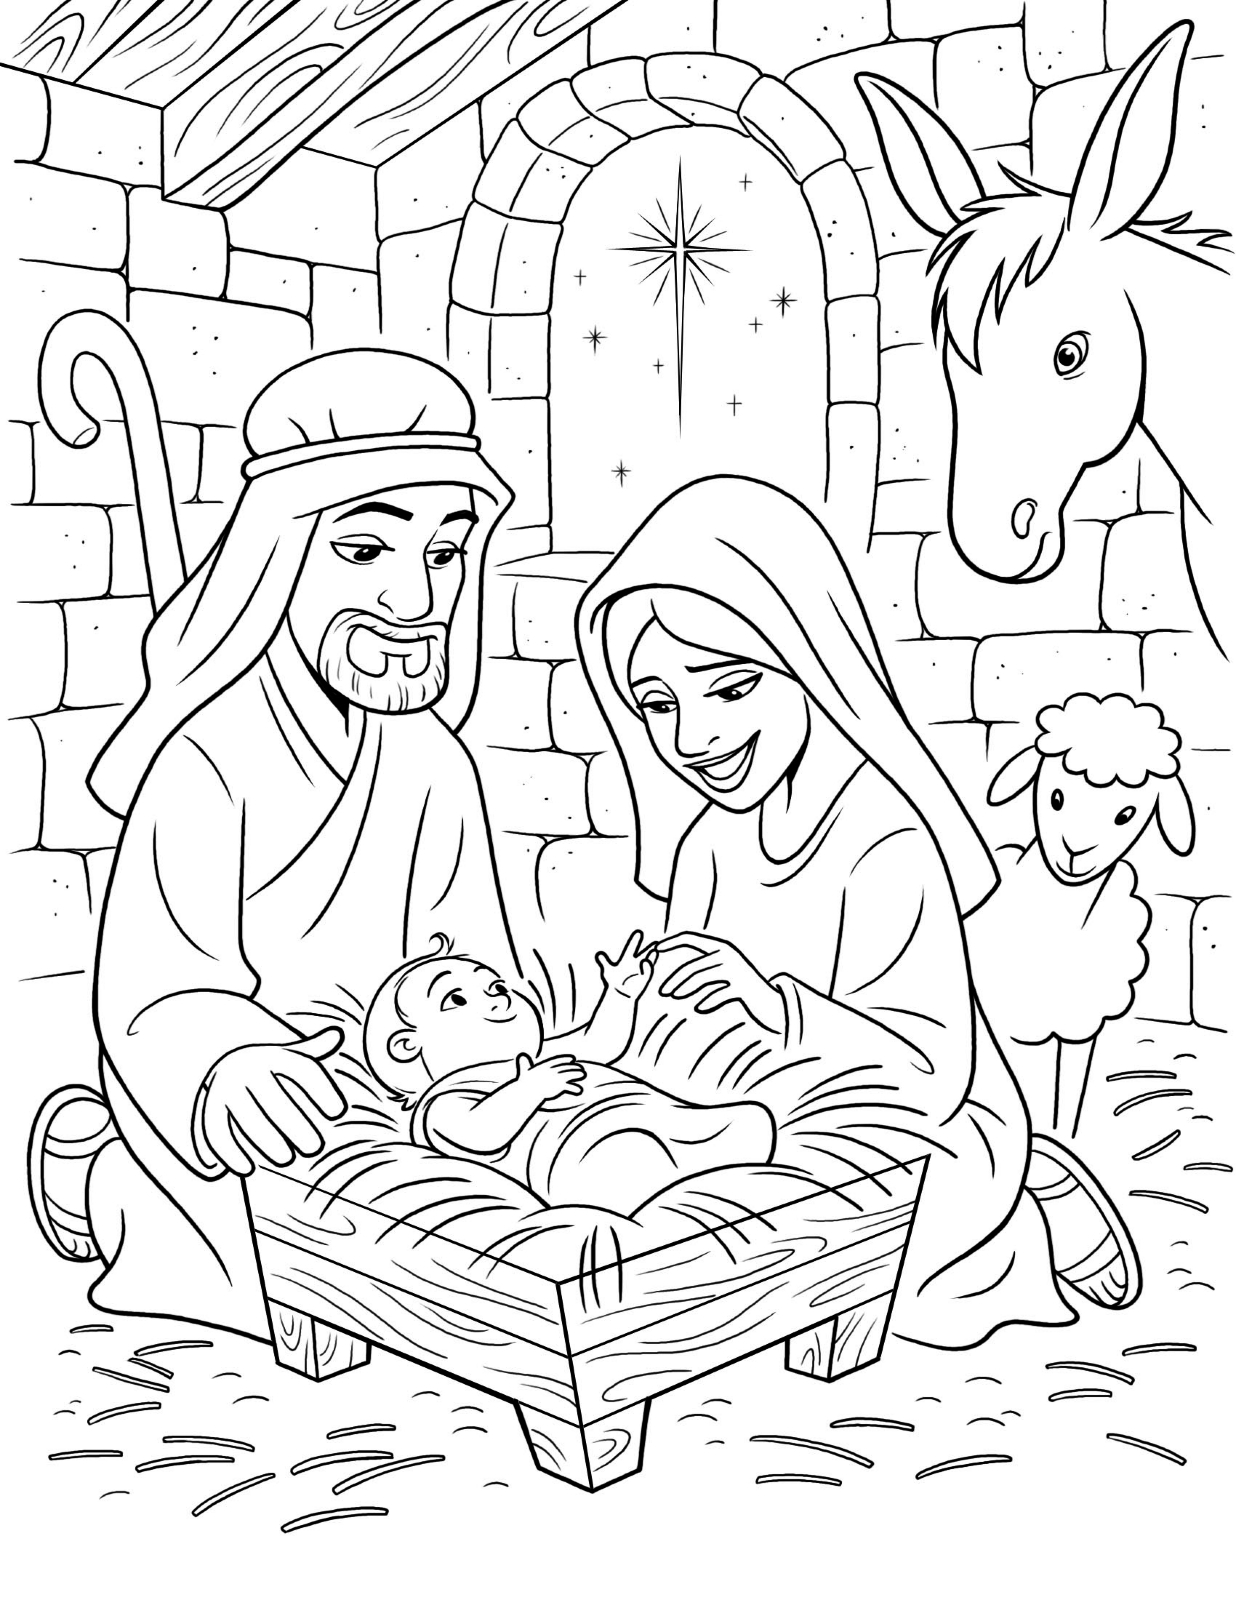 Lds Coloring Pages Coloring Pages—Christmas